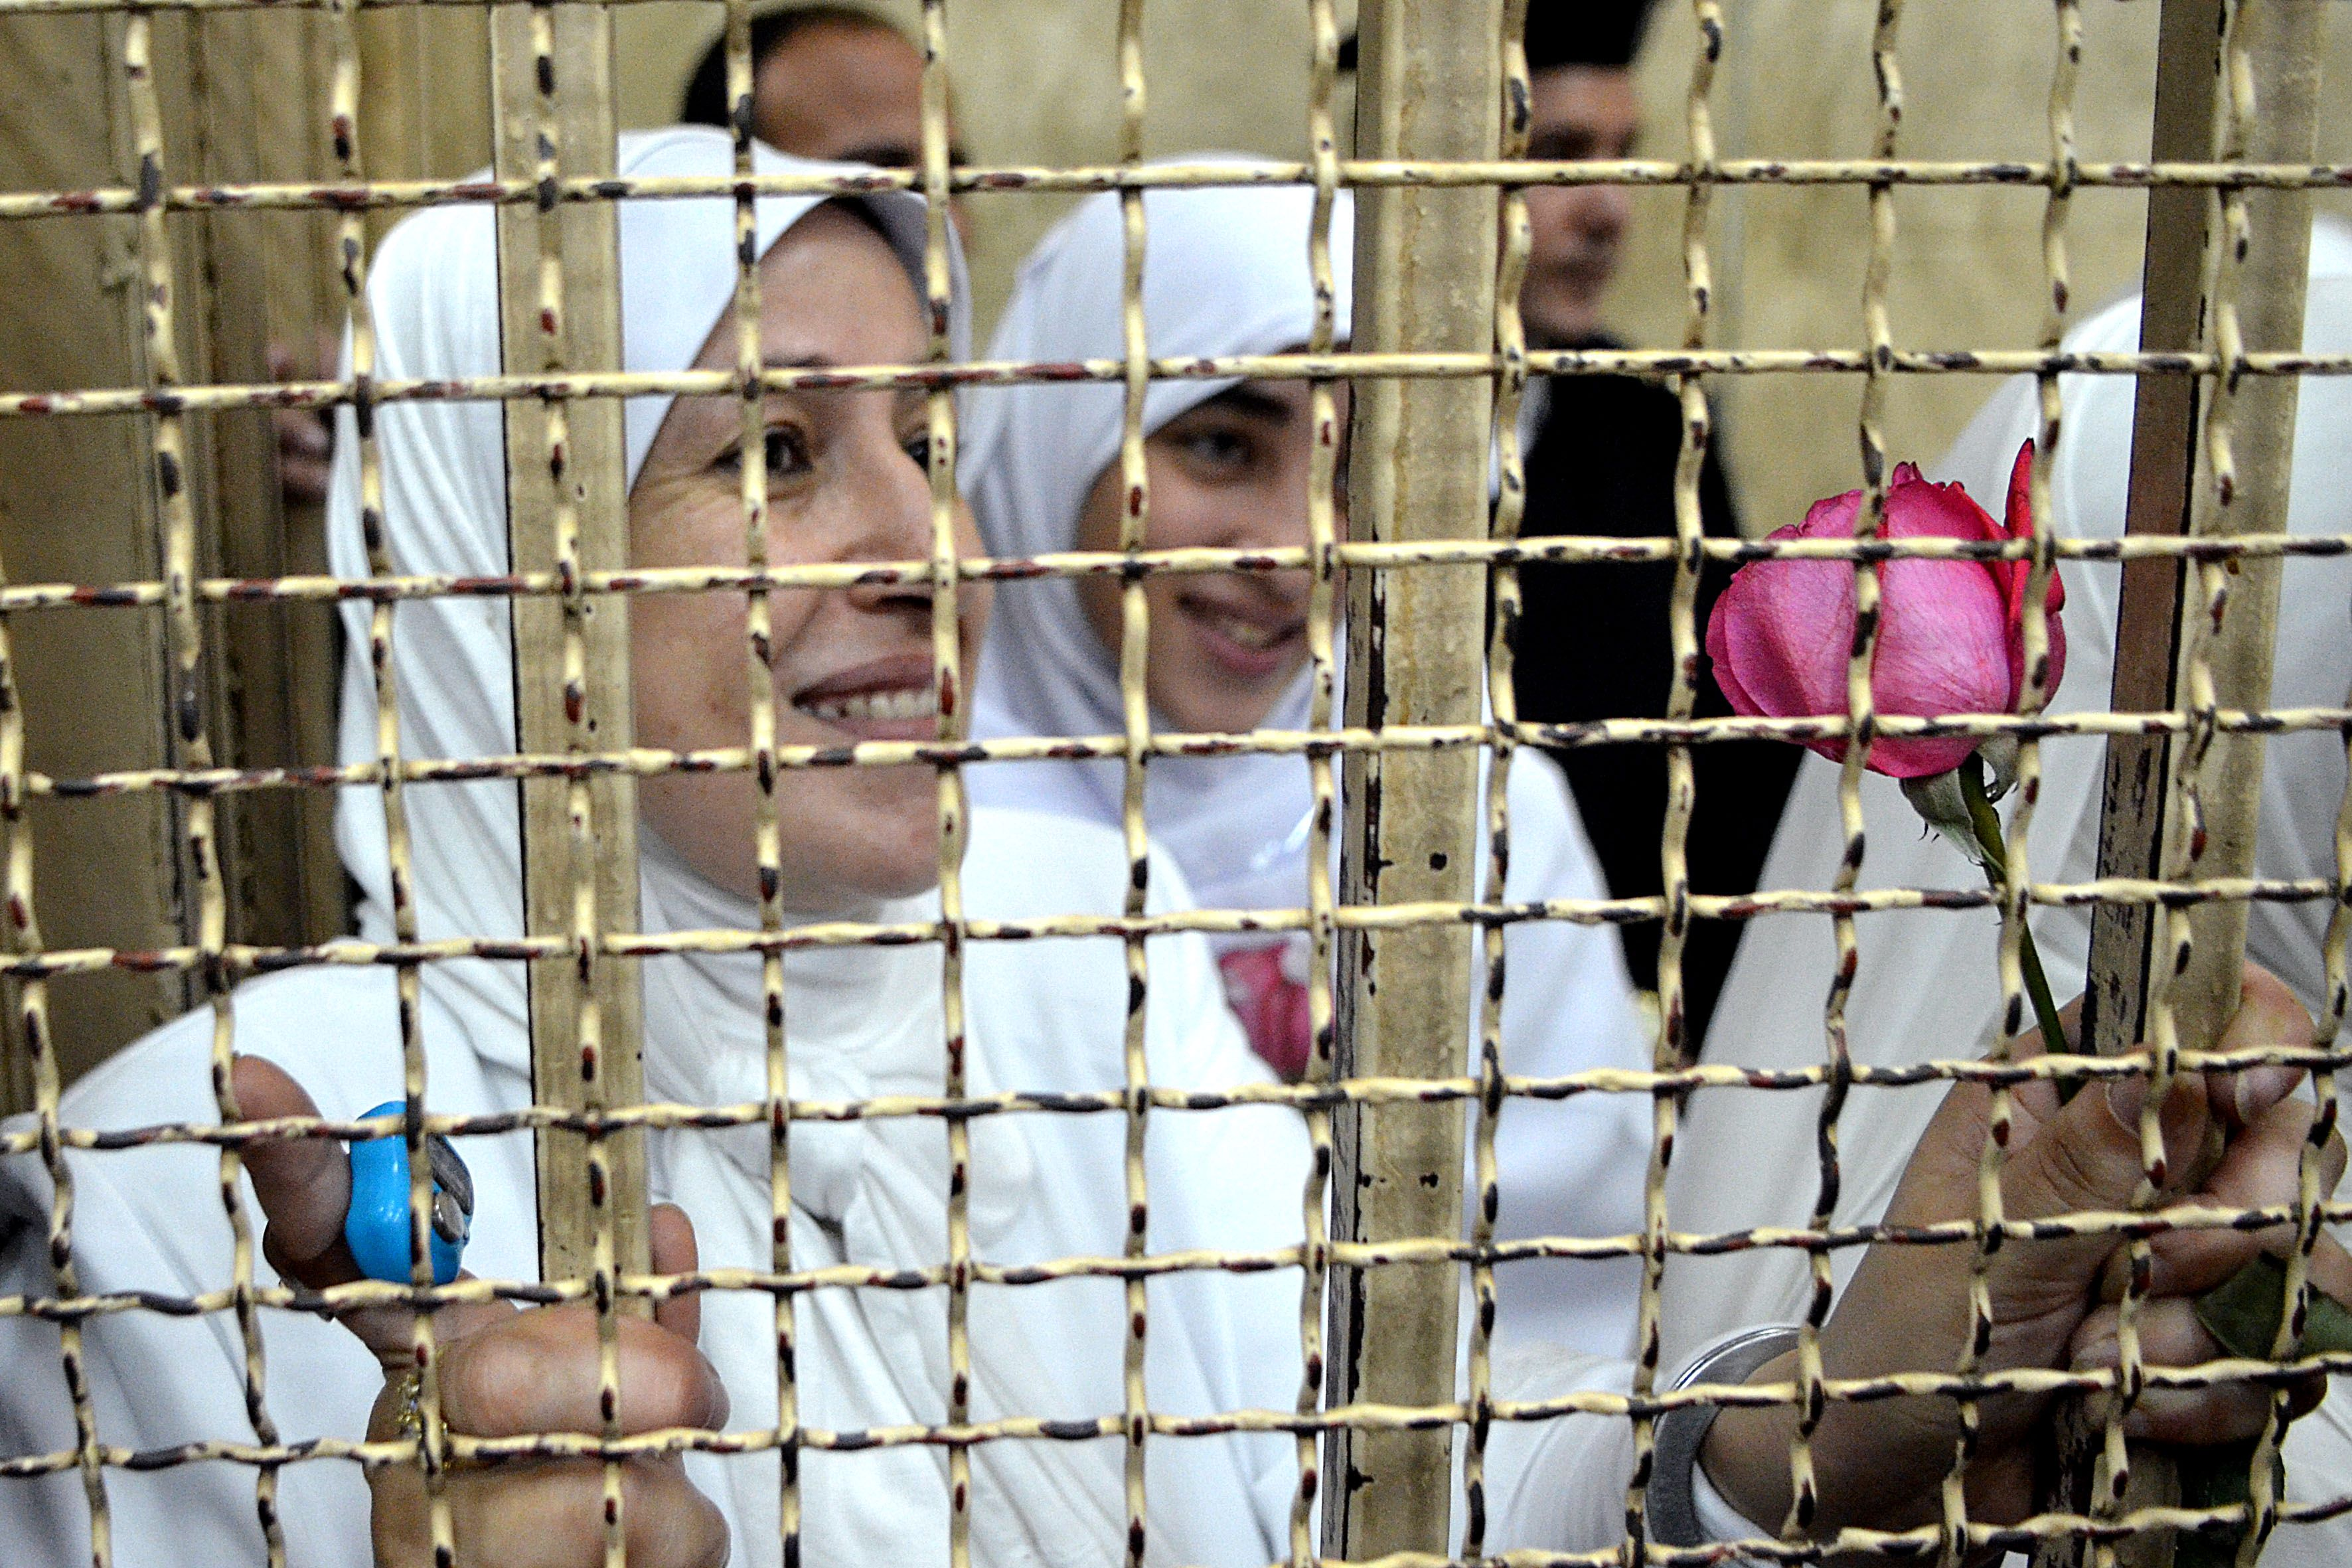 Egyptian women members of the Muslim Brotherhood hold roses as they stand in the defendants' cage dressed in prison issue white during their trial in at the court in the Egyptian Mediterranean city of Alexandria on December 7, 2013. Egyptian judges began hearing appeals of 21 women and girls handed heavy jail terms over an Islamist protest, in a case that sparked an outcry. The 14 adult women were handed 11-year jail terms and the seven minors sentenced to juvenile detention last month, shocking even supporters of the military-installed government.  (AFP PHOTO/STR)